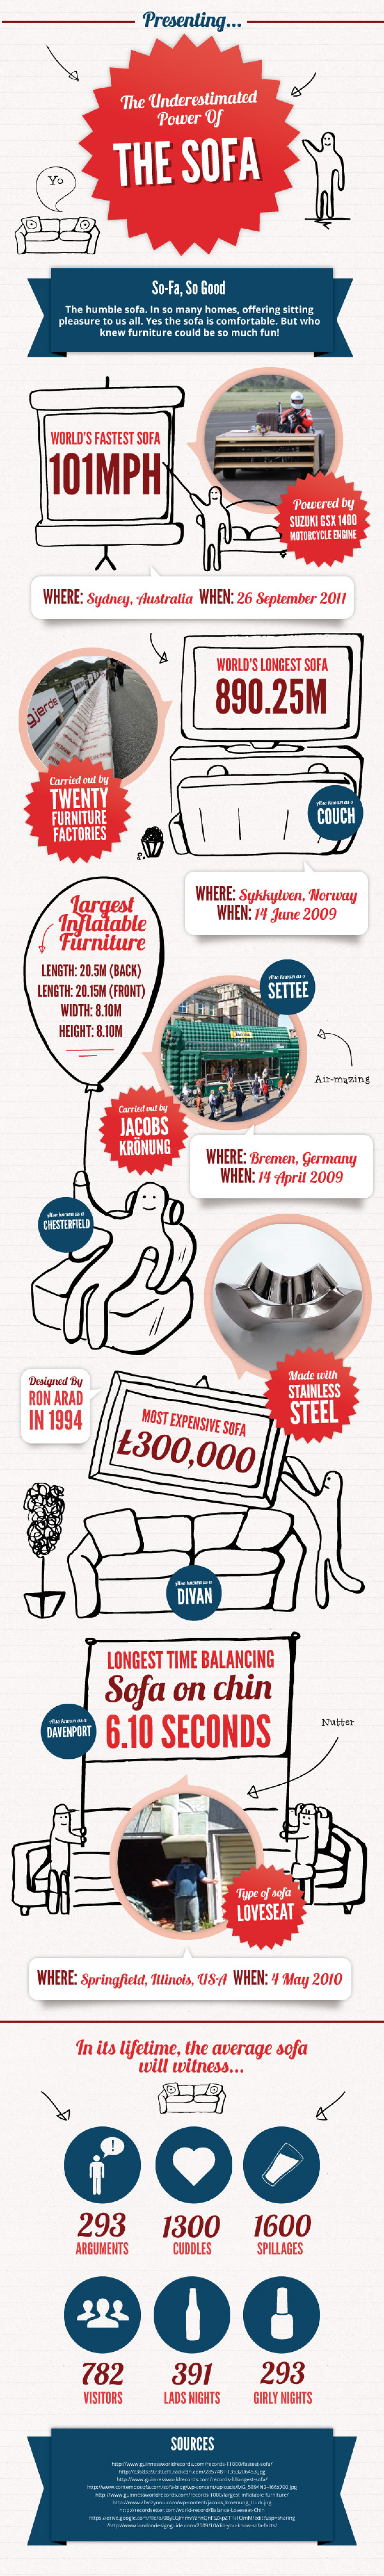 The Underestimated Power of the Sofa Infographic